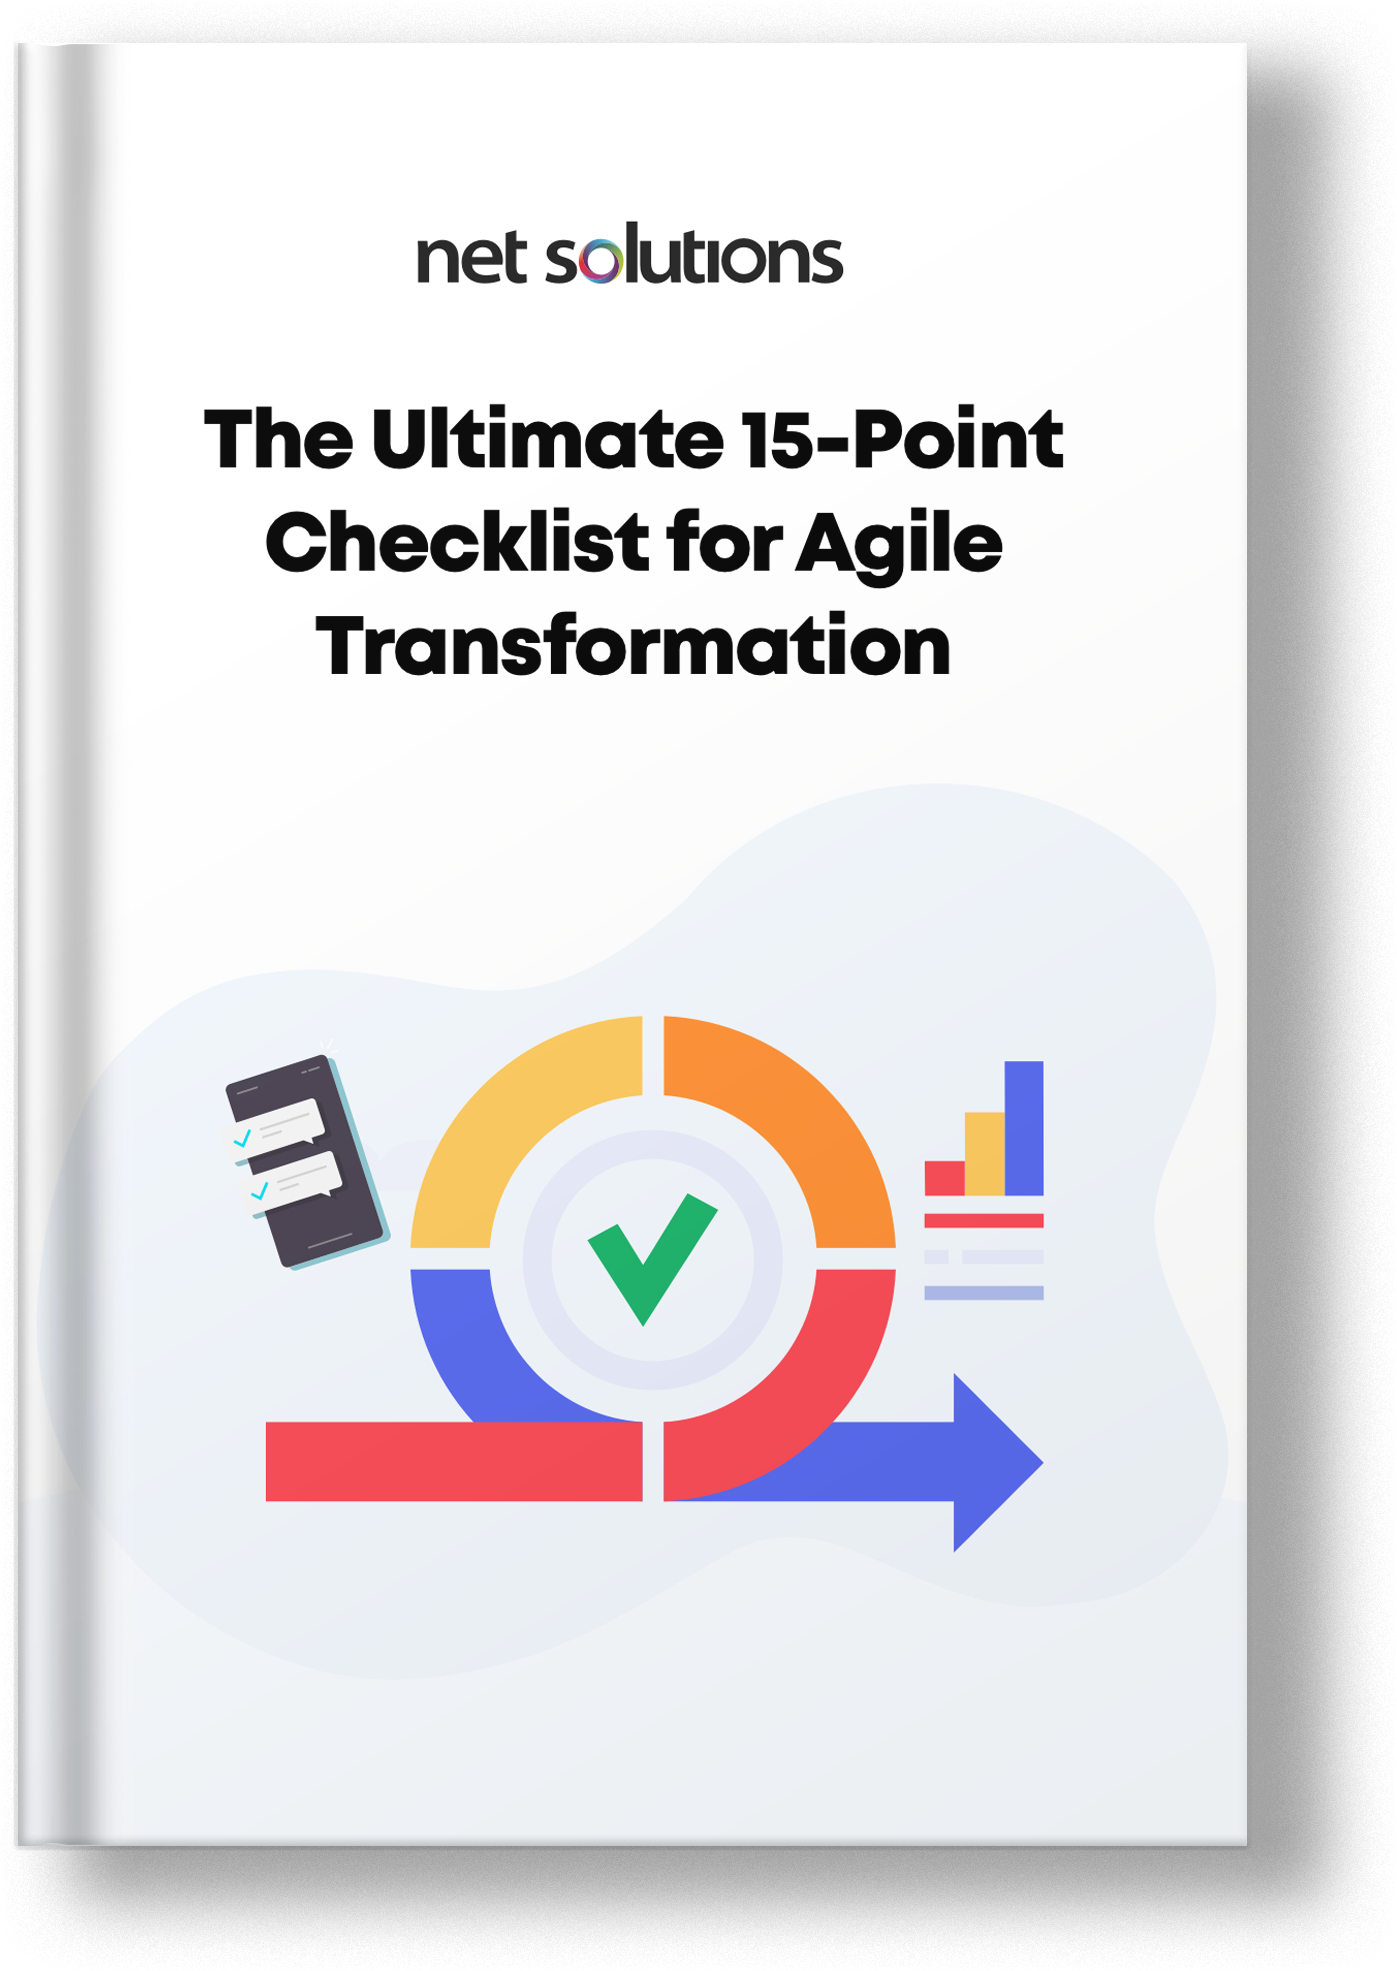 The Ultimate 15-Point Checklist for Agile Transformation